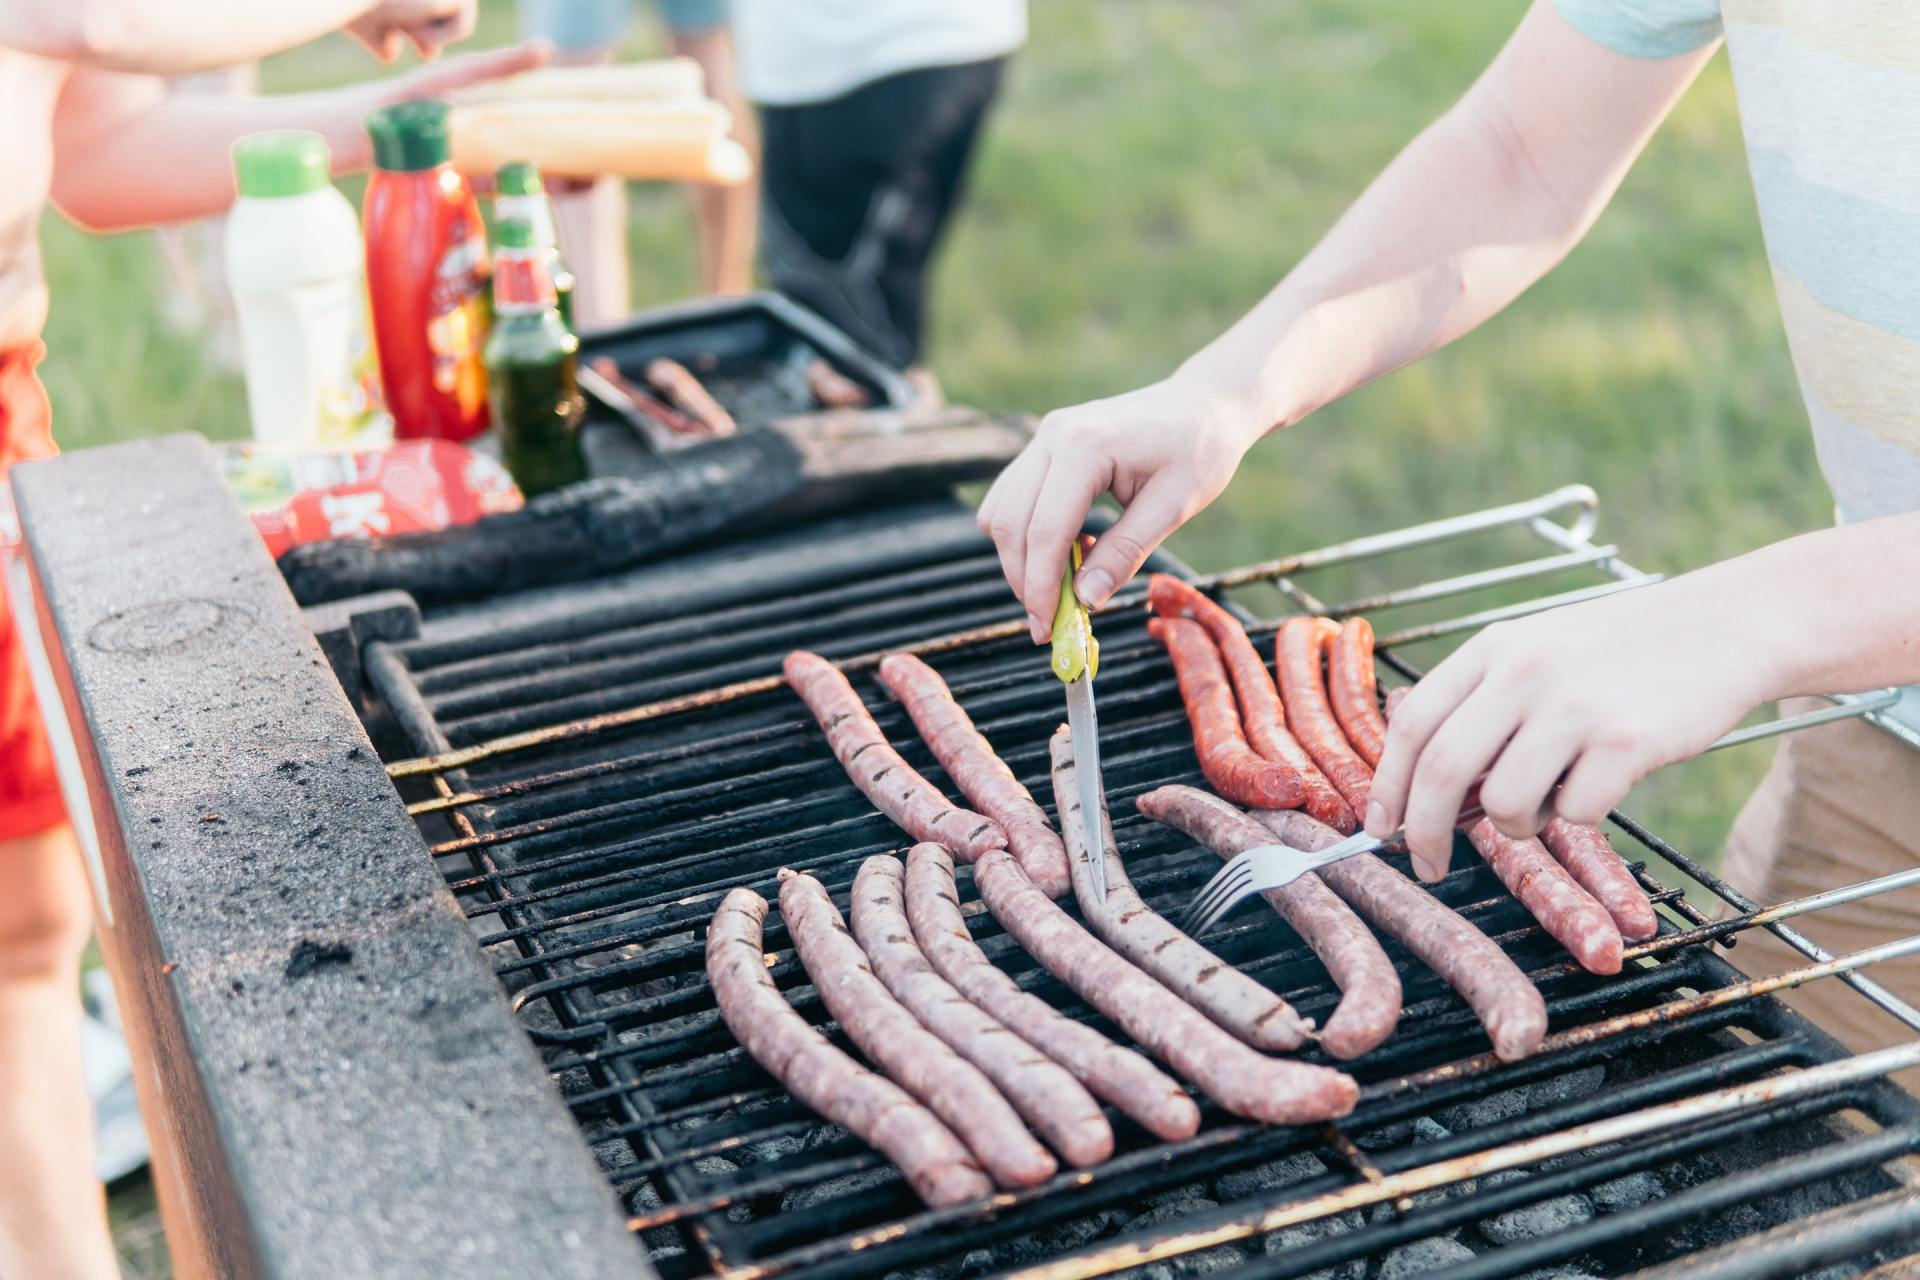 5 summer office party ideas that are better than a holiday party